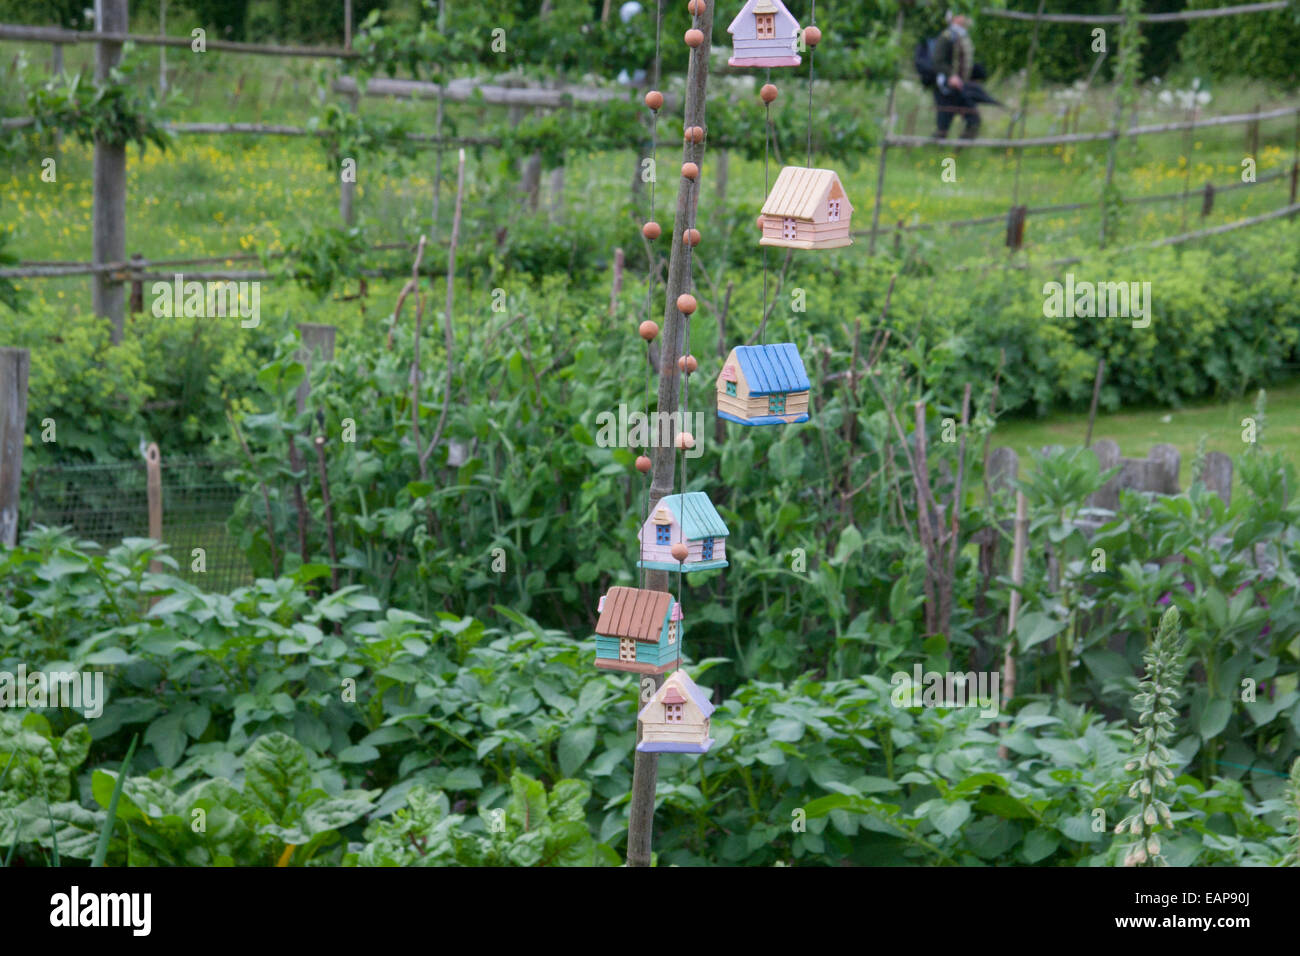 Marvelous Garden Decorations Hanging From A Pole In A Rustic Vegetable Plot At A  Country House In Herefordshire